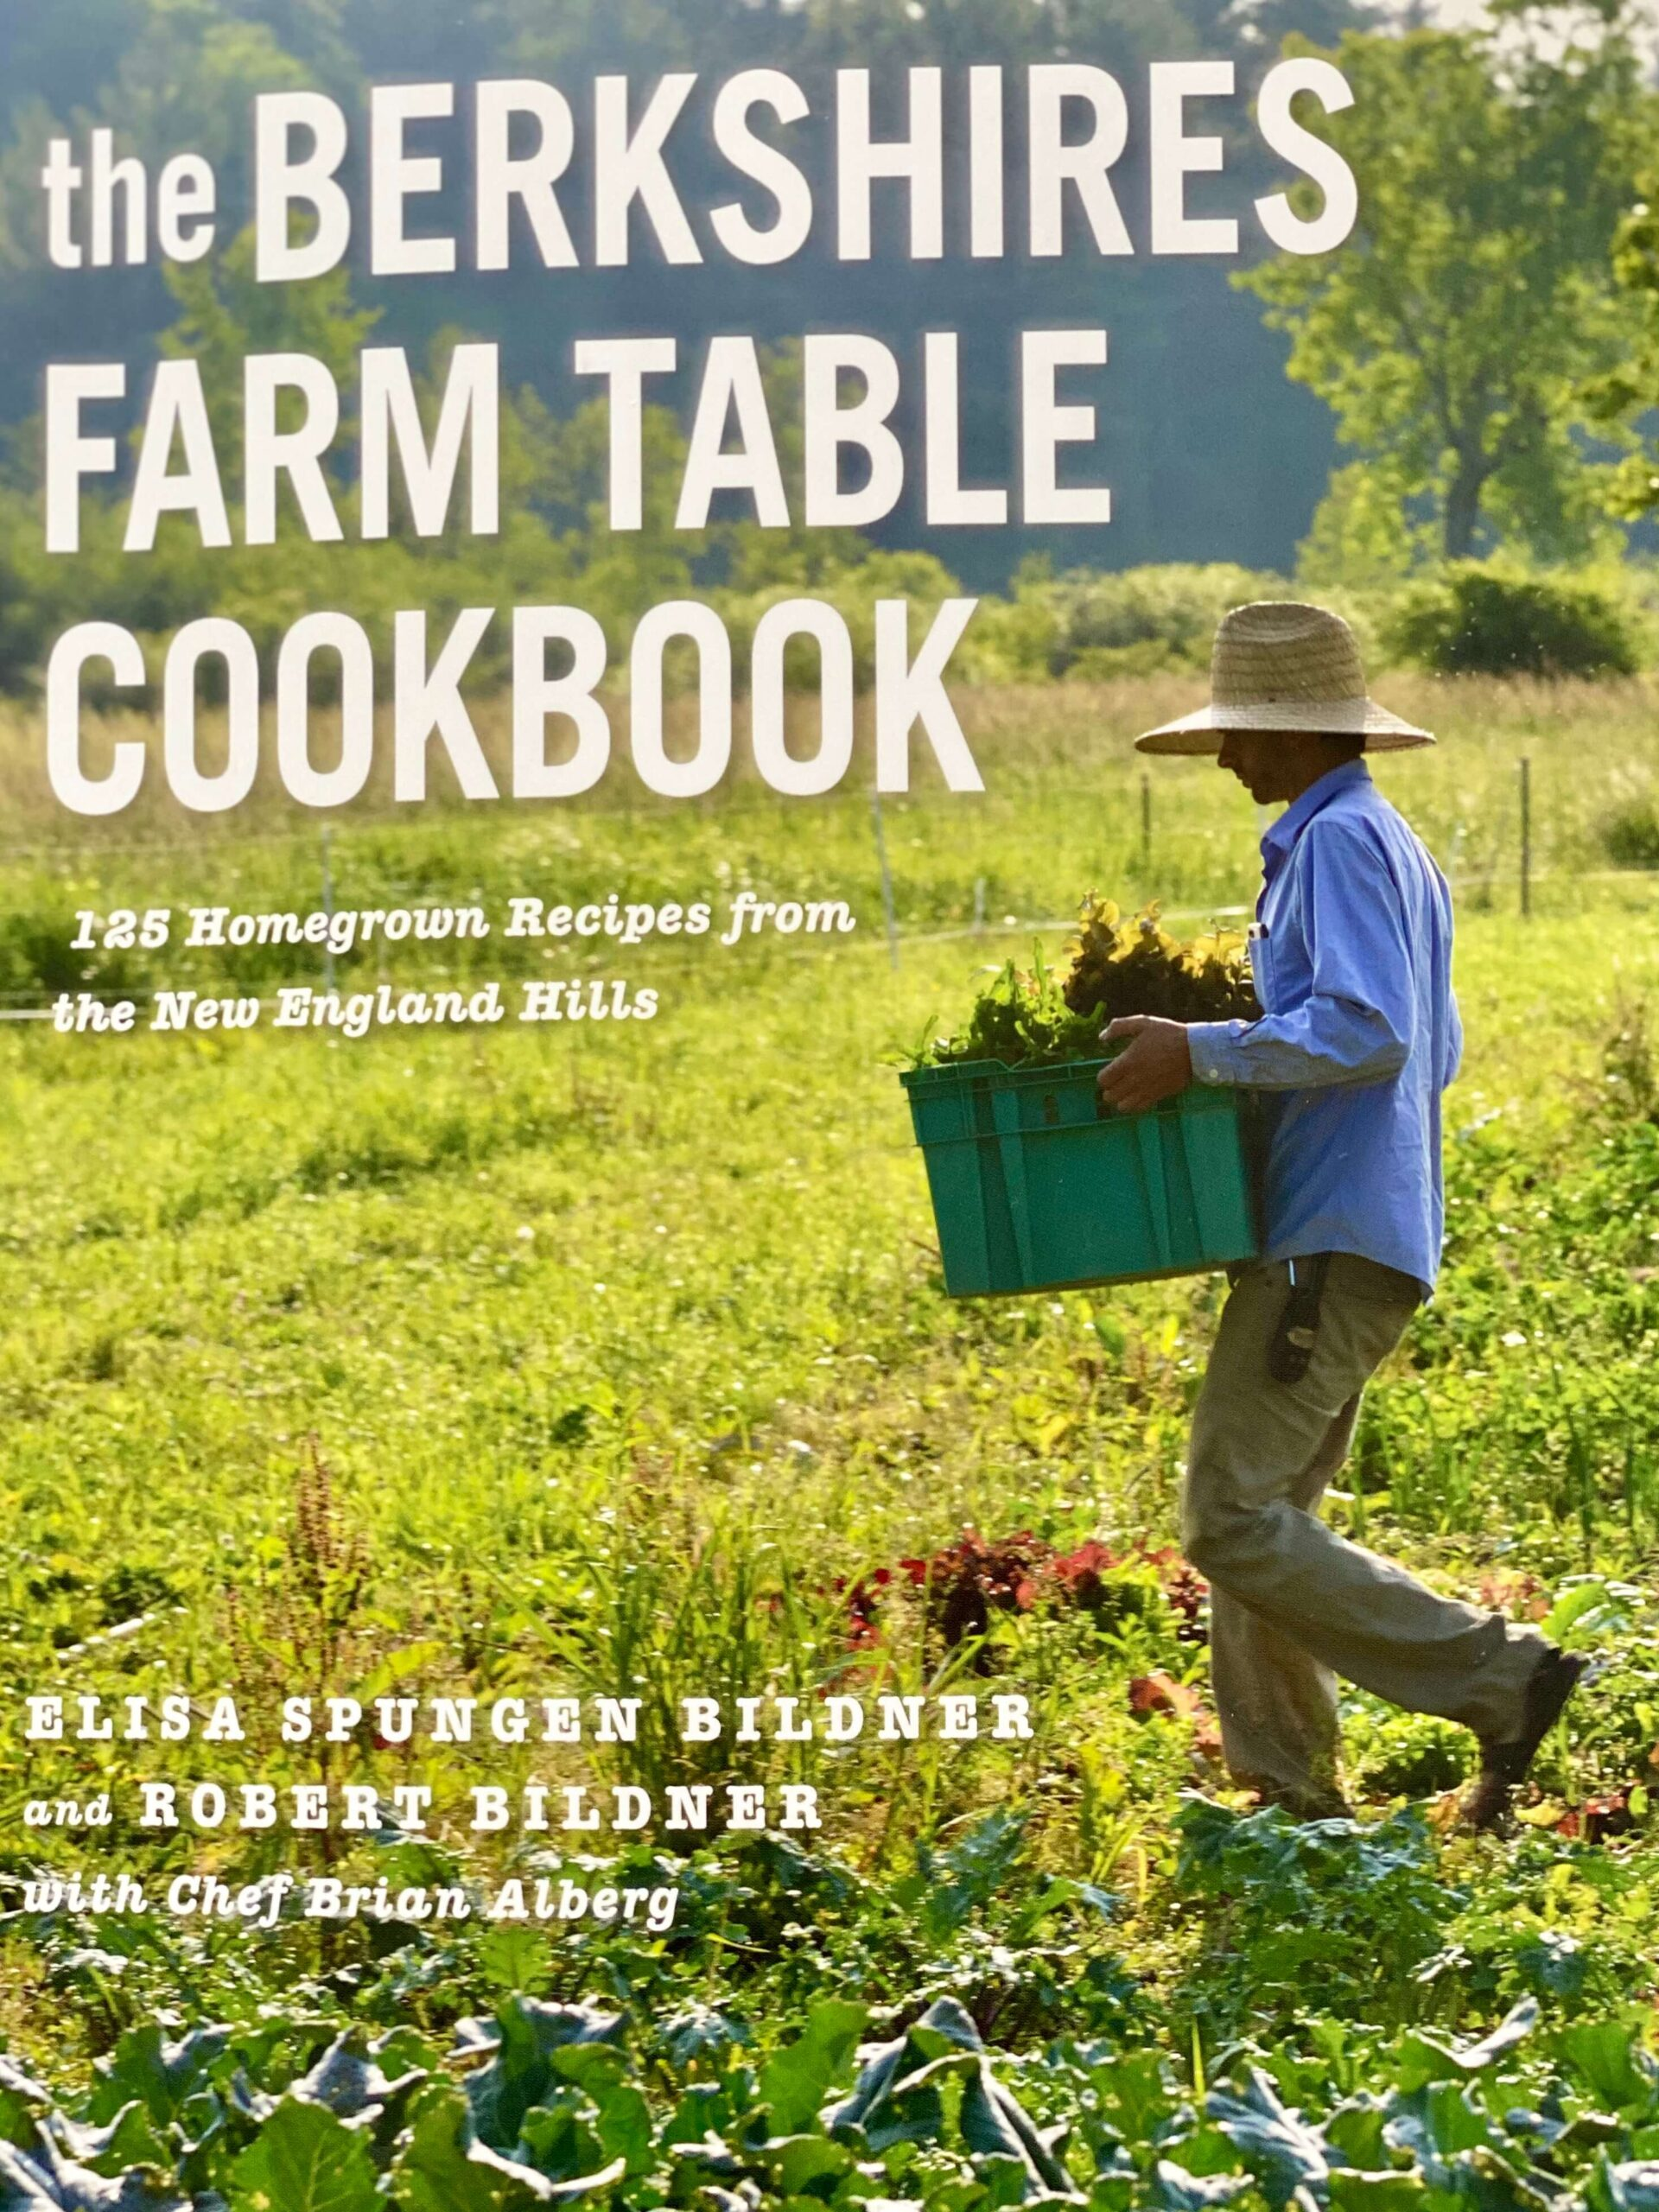 Let's Talk about Farm to Table Eating